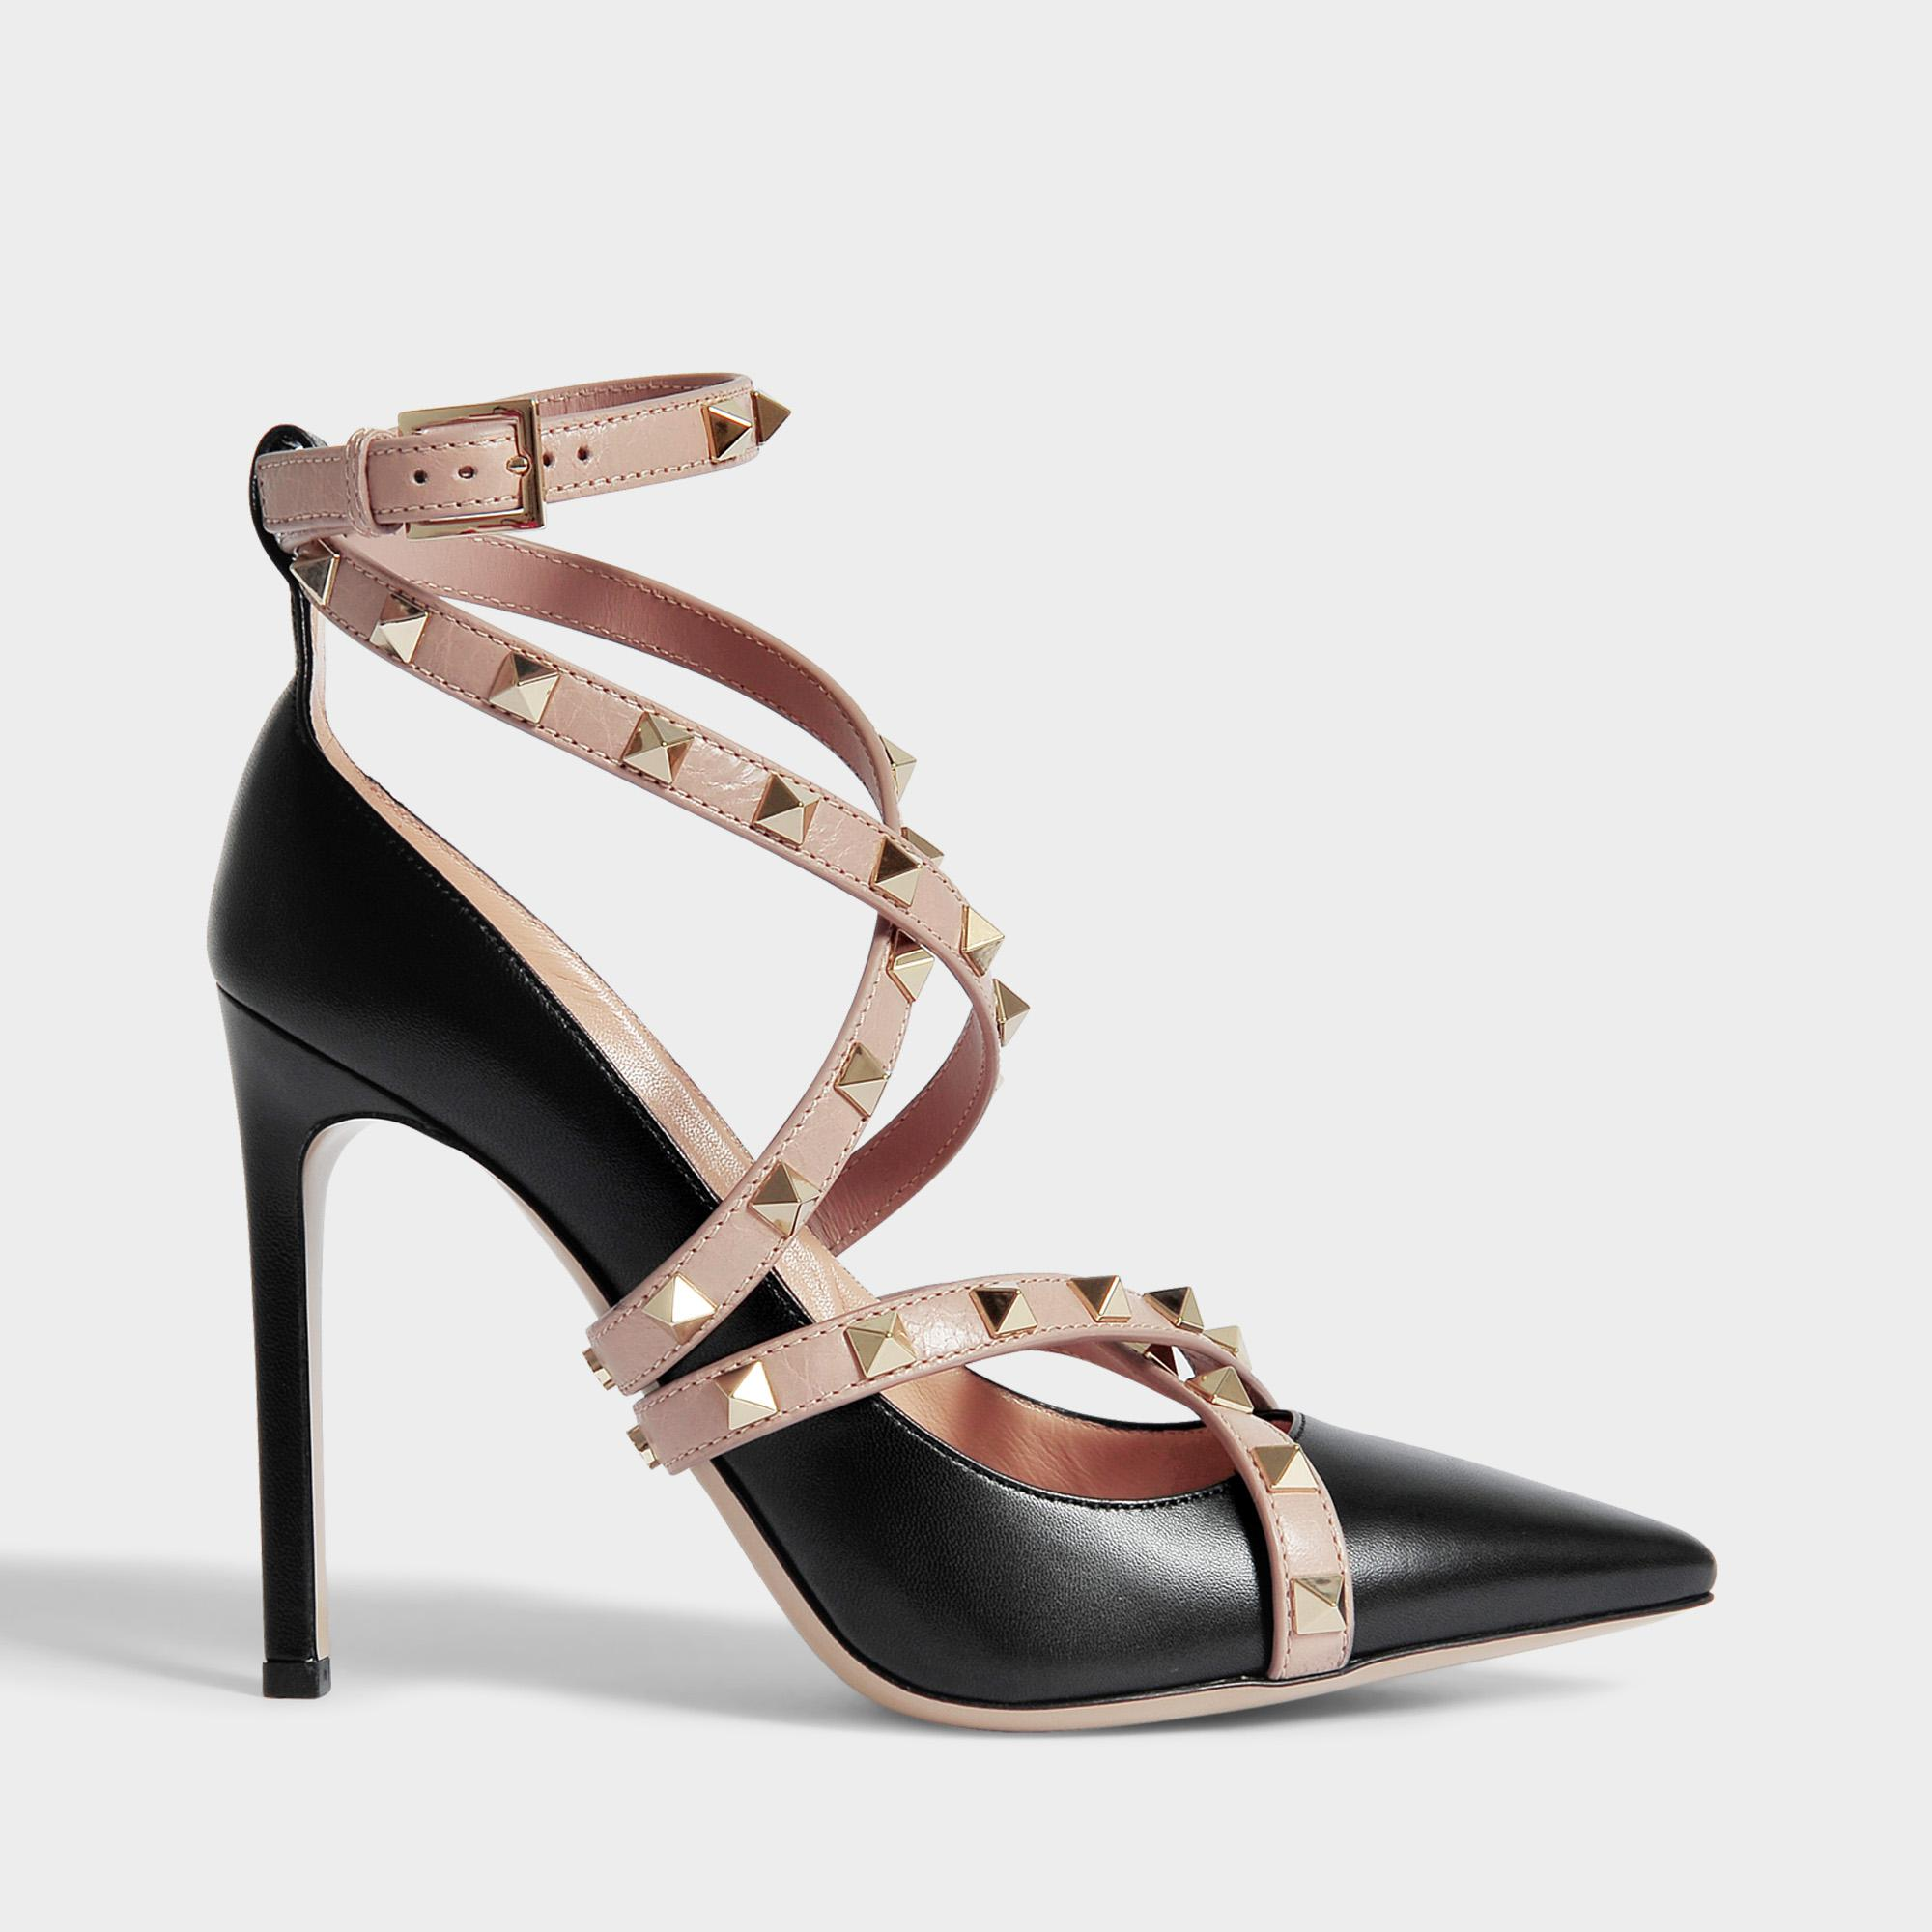 7eeb3baca326 Valentino Rockstud Pointed Pumps With Ankle Strap In Black And ...